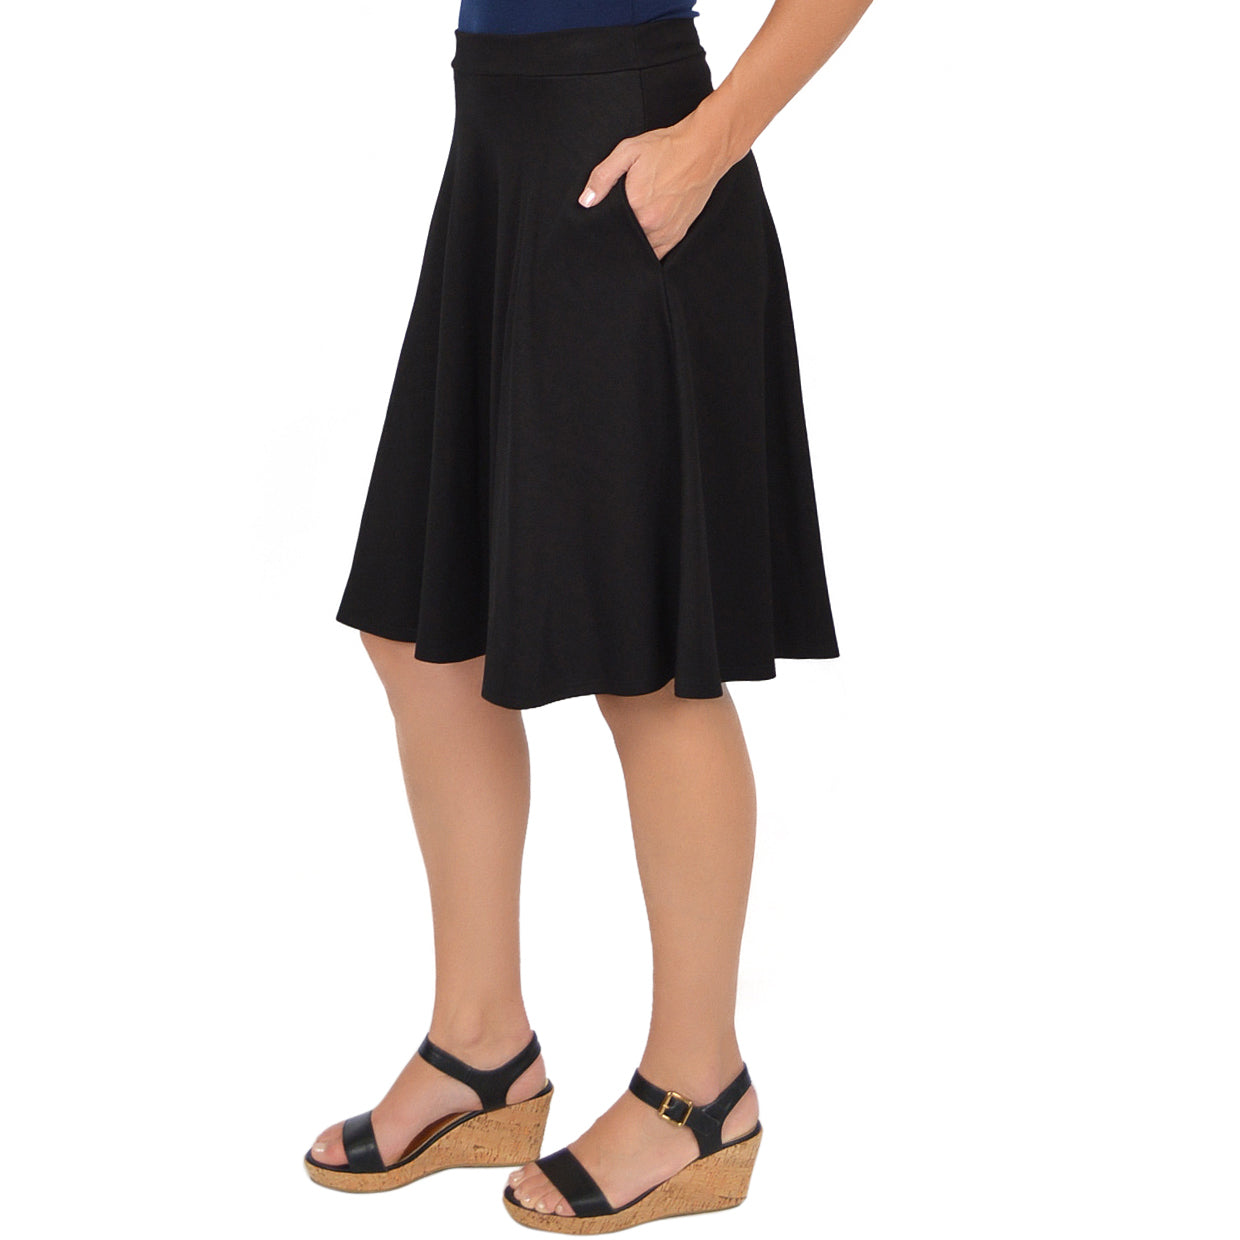 346fa3d2aaf Stretch Is Comfort Women s Plus Size Circle Skirt With Pockets